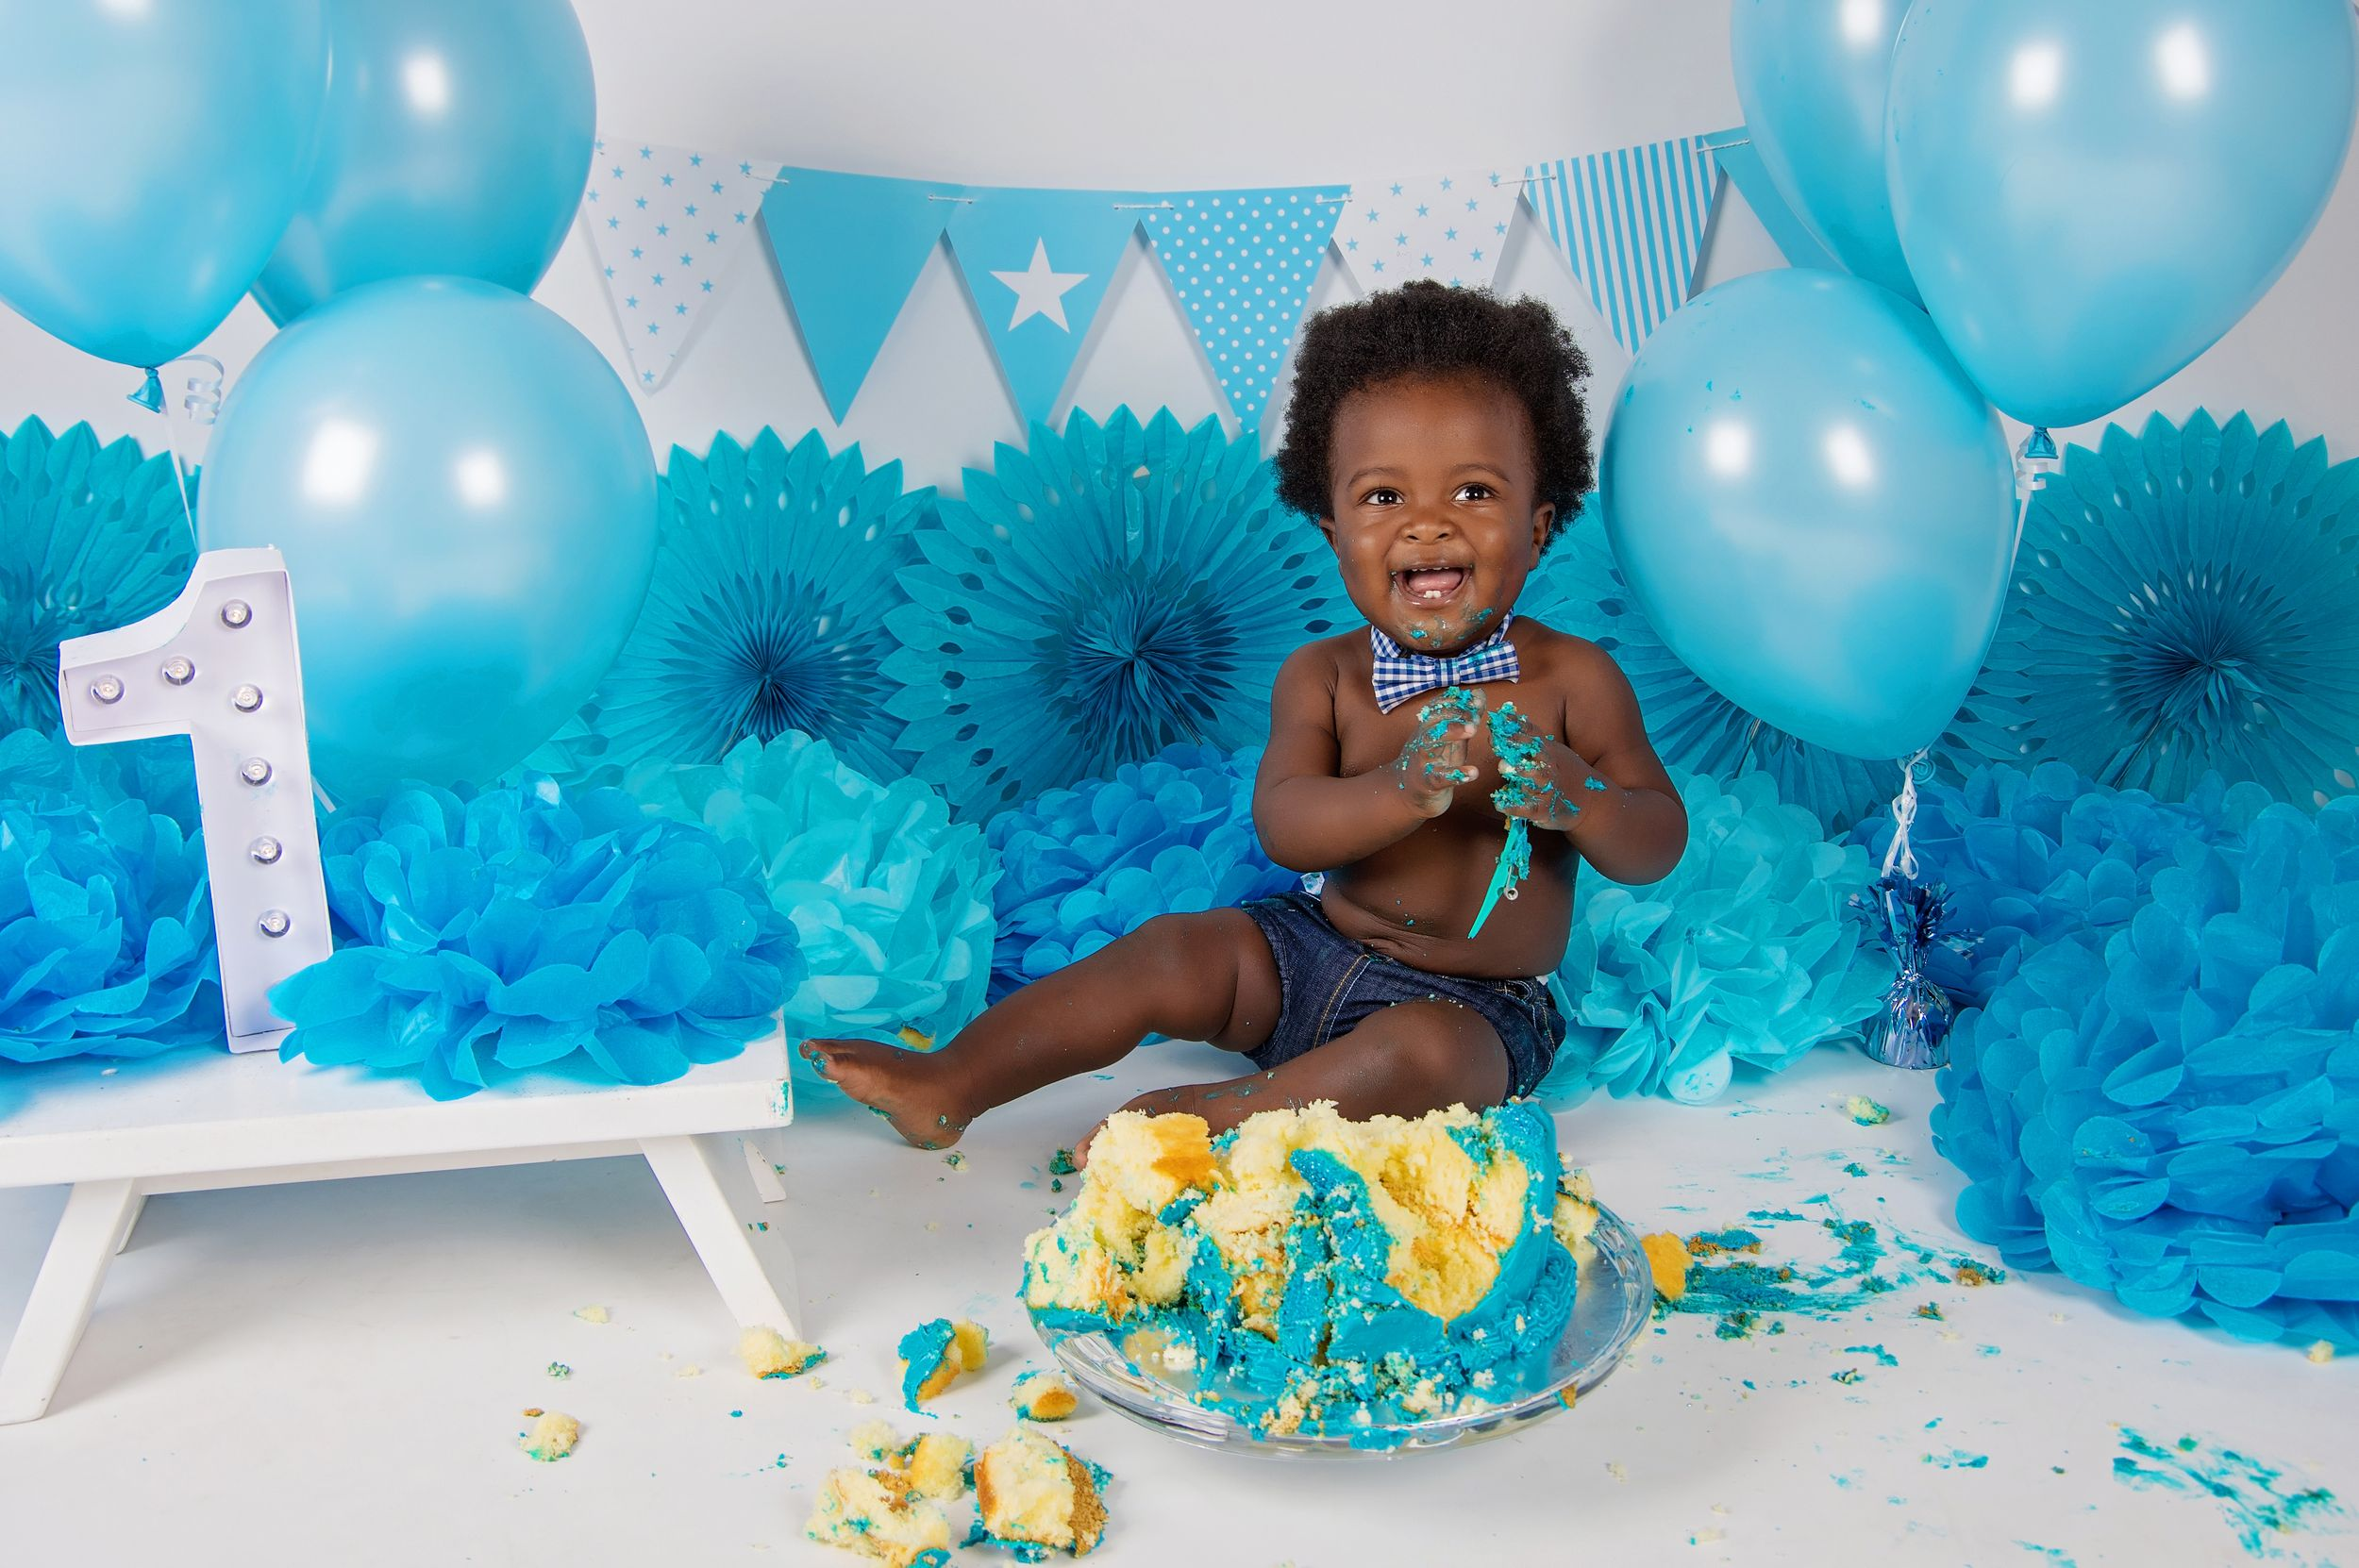 baby boy surrounded by blue decorations and balloons eating cake and laughing